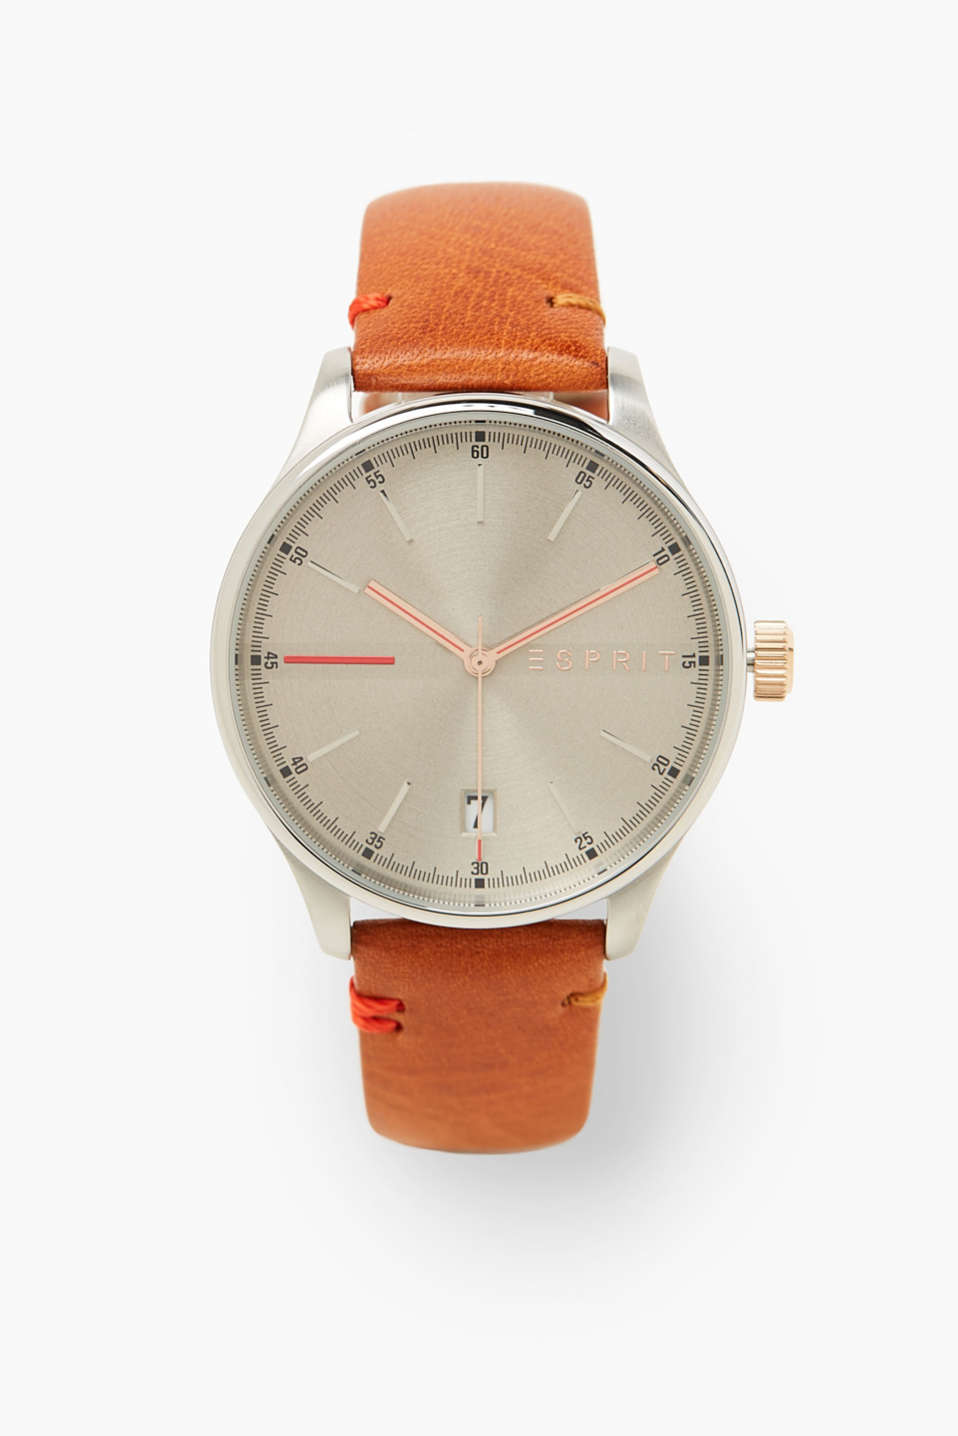 Esprit - Stainless steel watch with leather strap